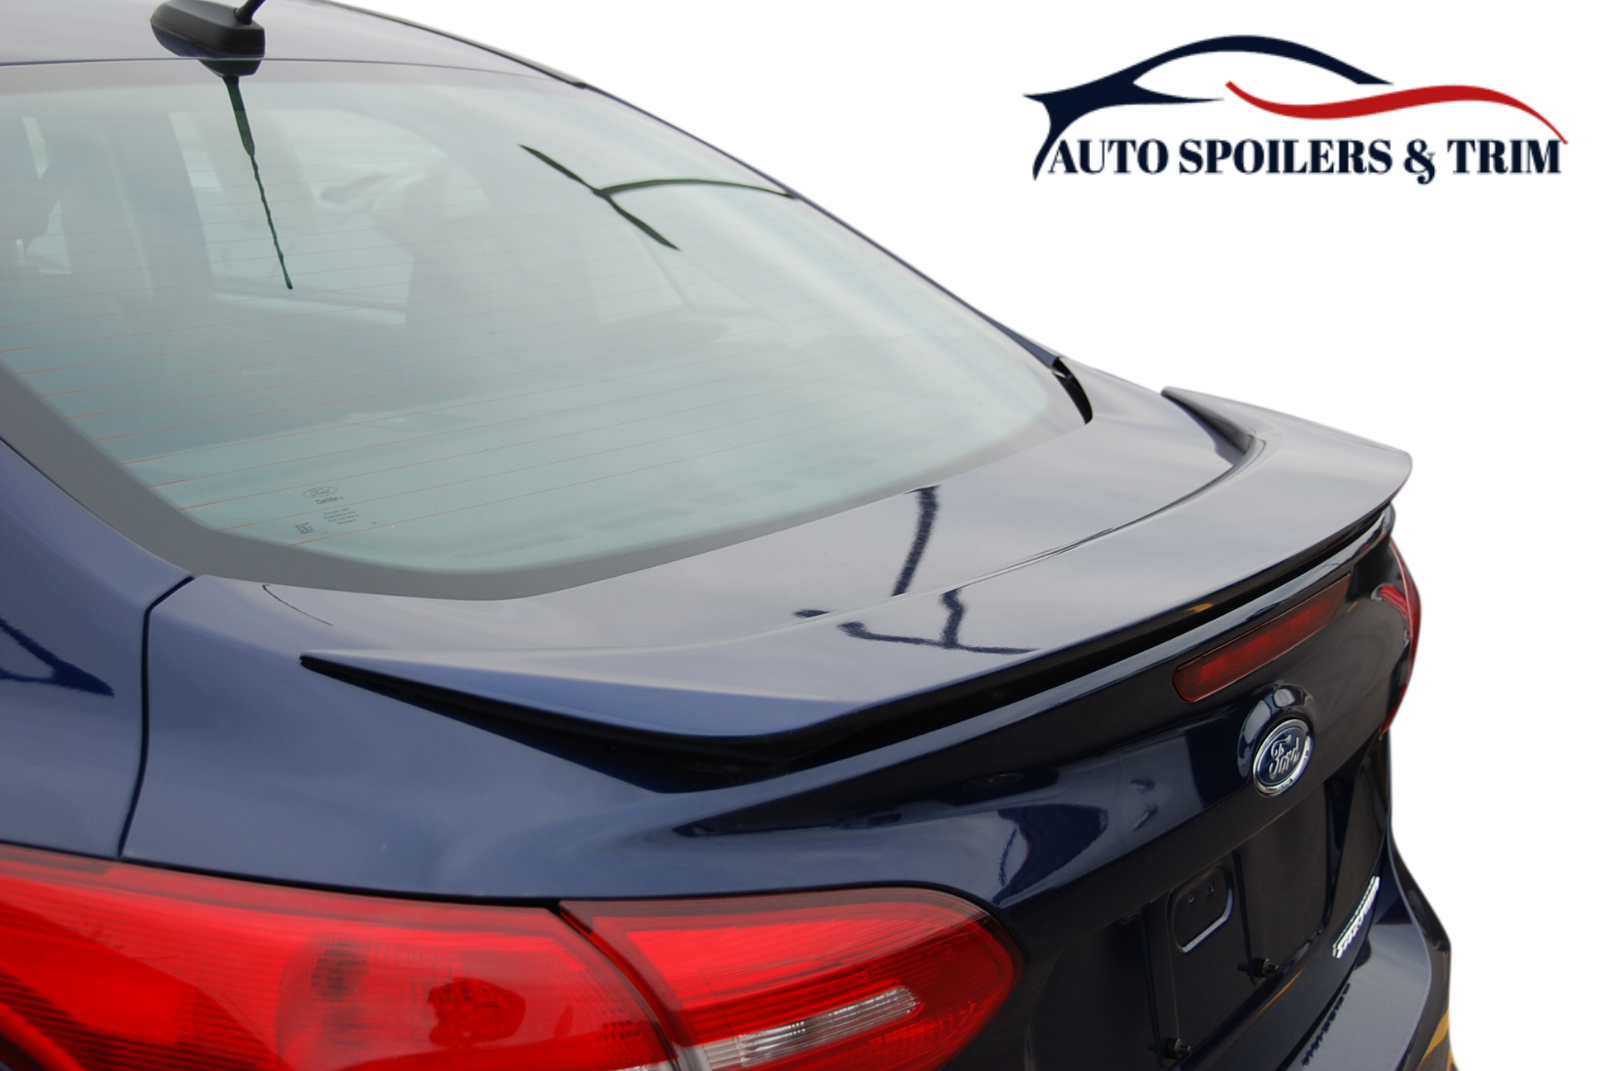 Fits OE Factory Style Painted Spoiler Wing Sterling Gray Metallic Clearcoat UJ